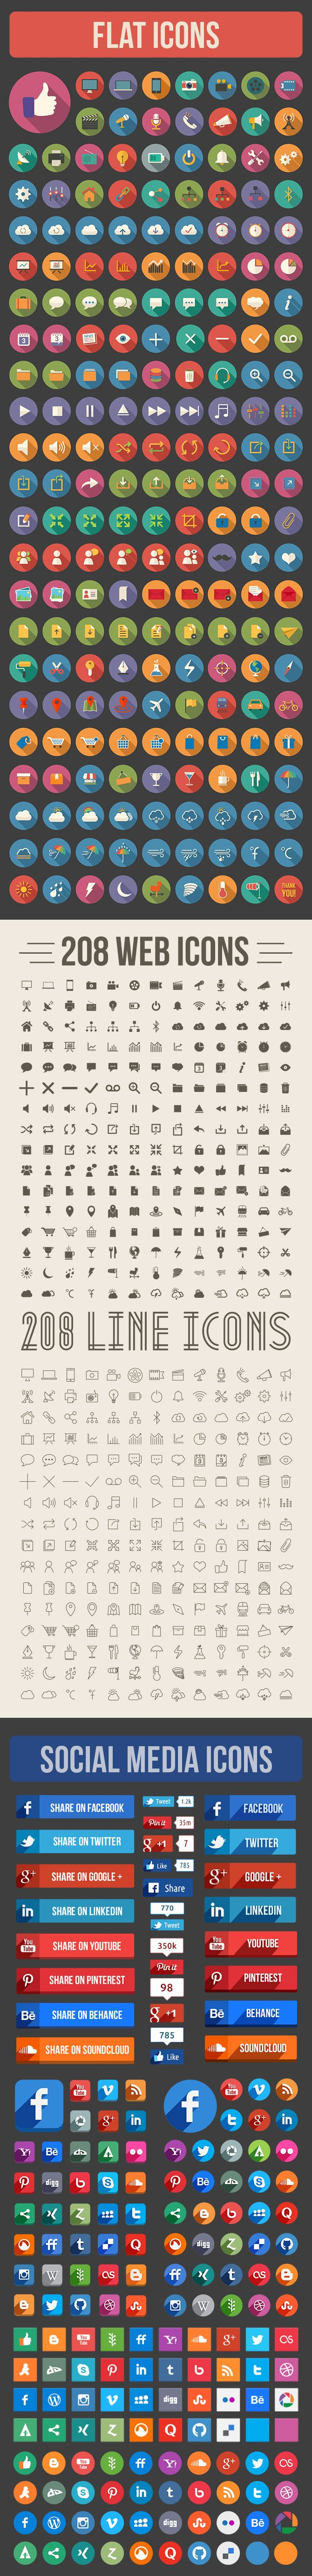 1 week 800 each icons and 2 packages weed... #webdesign #icon #vector #illustration #design #icons #UI #UX #template #theme #web #website #app #iphone #badge #logo #logodesign #longshadow #longshadowicons